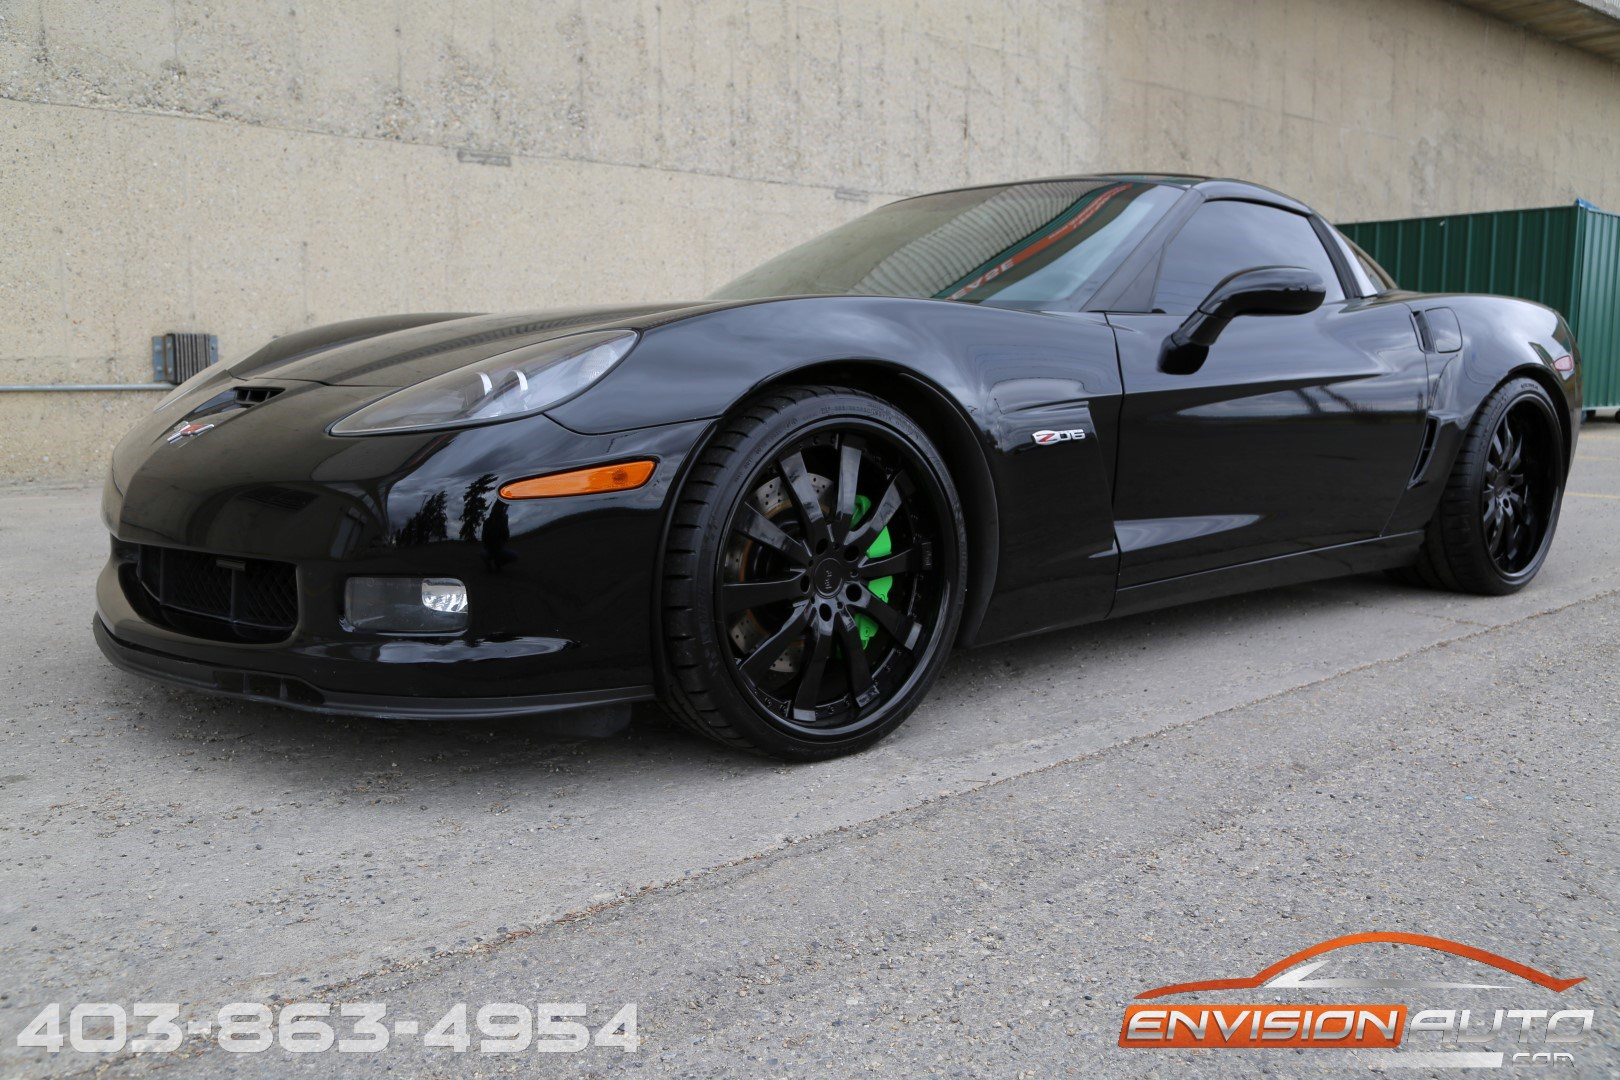 2007 Chevrolet Corvette Z06 – 505HP – Custom Stereo – Wheels | Envision Auto - Calgary Highline